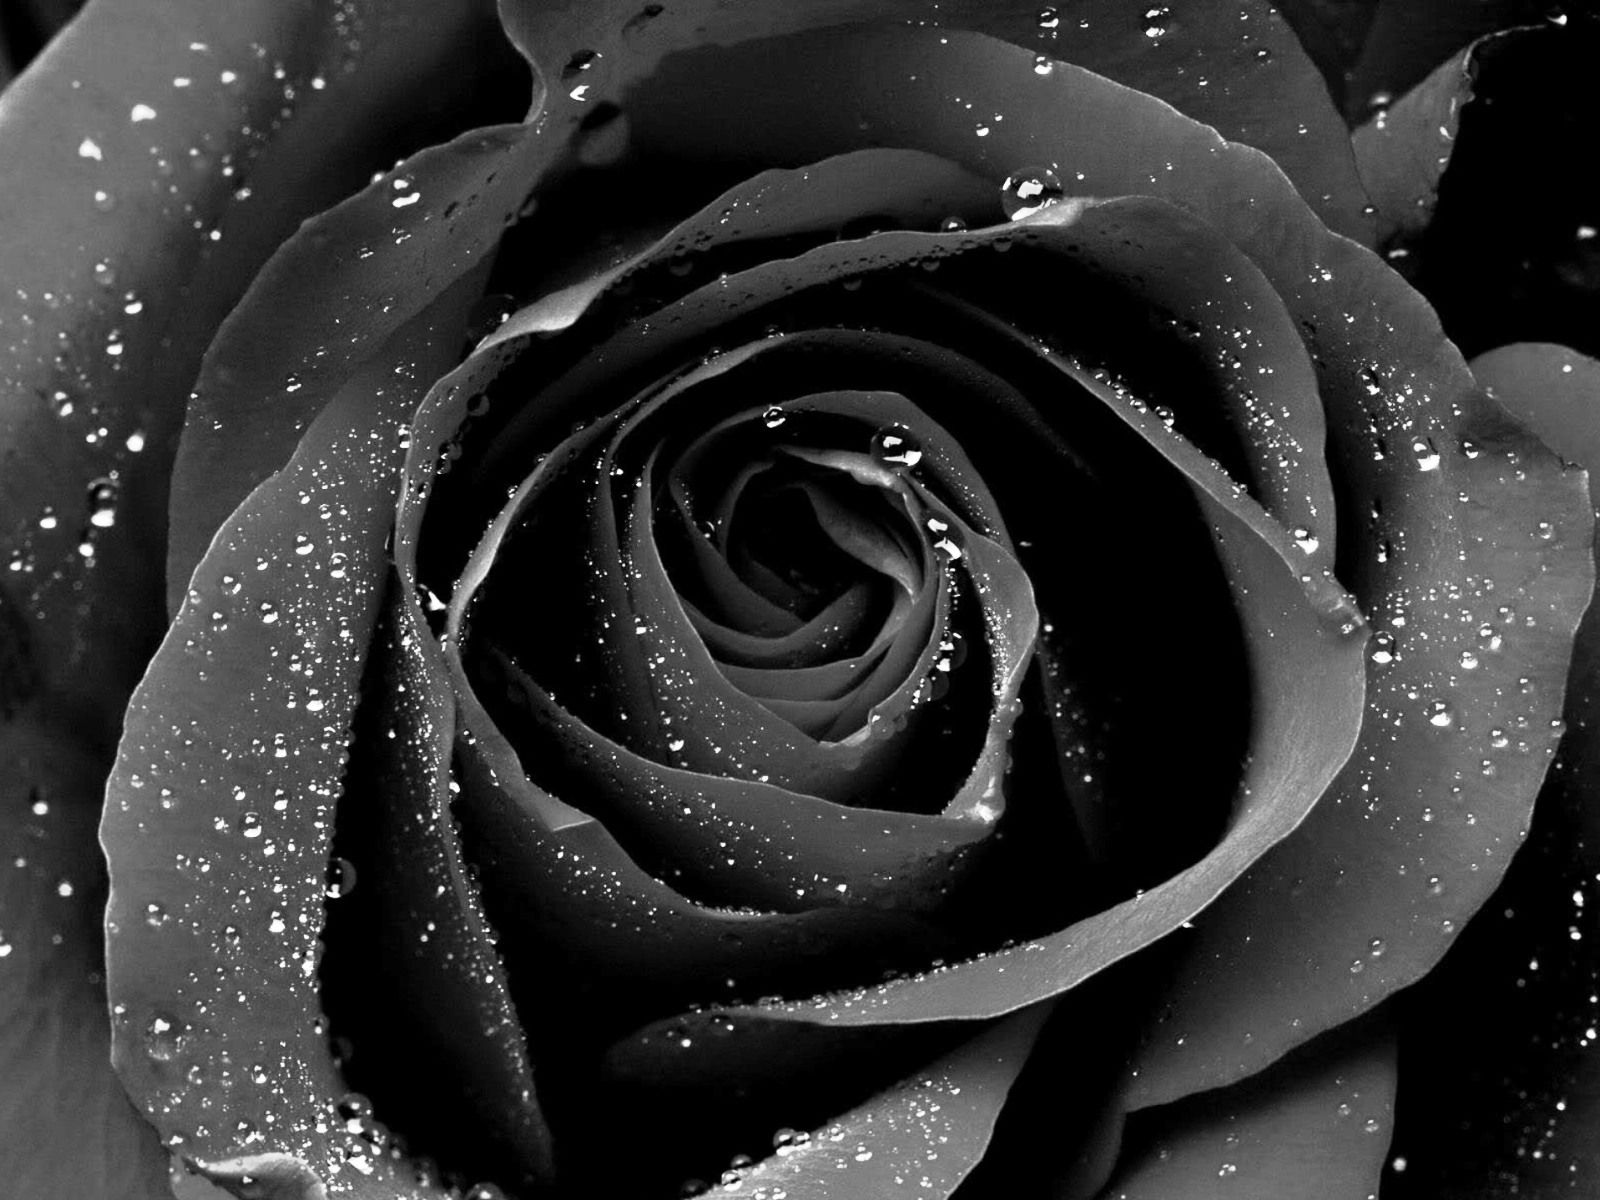 Black Rose Wallpaper Free Download